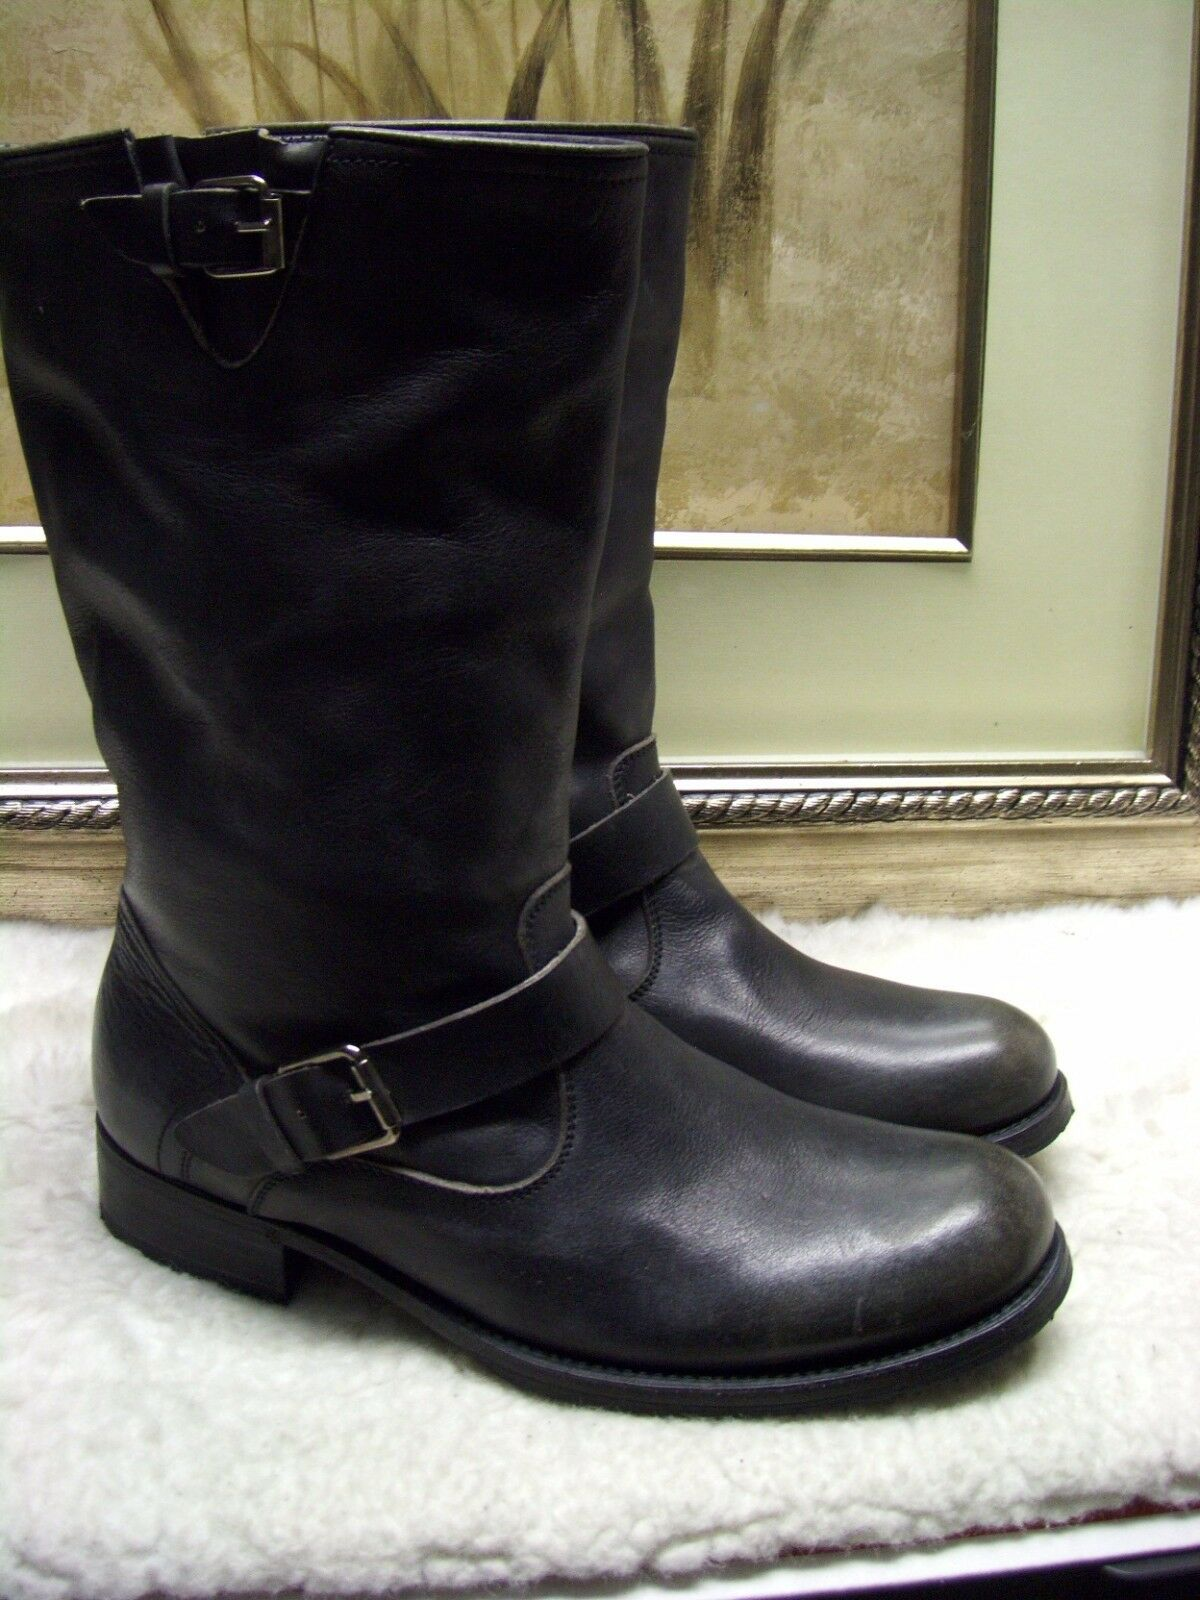 Authentic N.D.C MADE BY HAND Buckle-Strap Biker Boots 40 $695